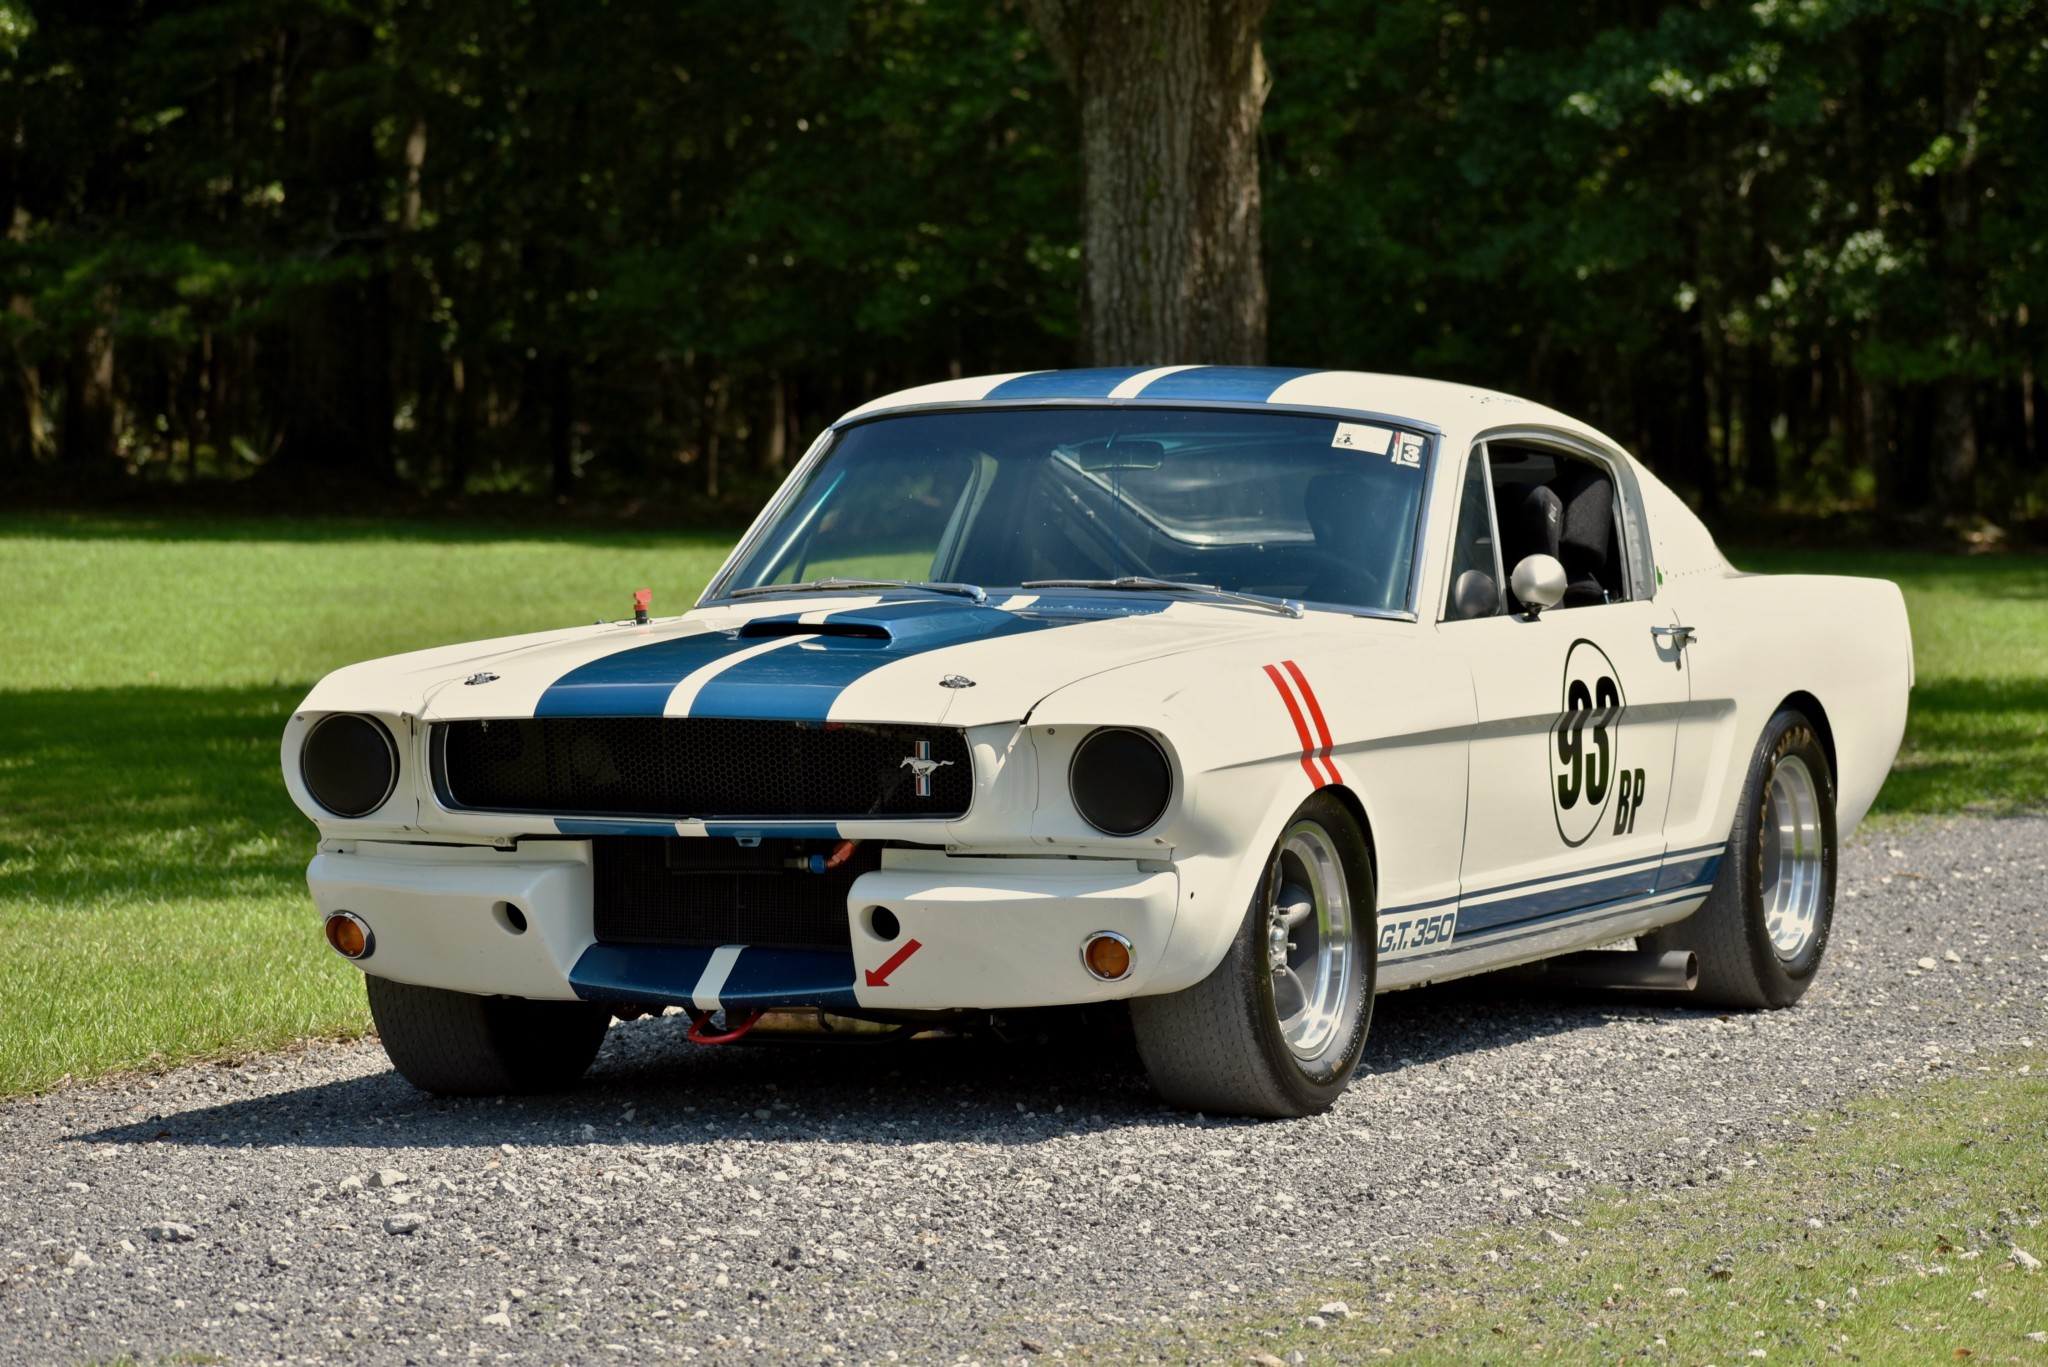 Race a vintage GT350 on a budget with this Shelby replica thumbnail